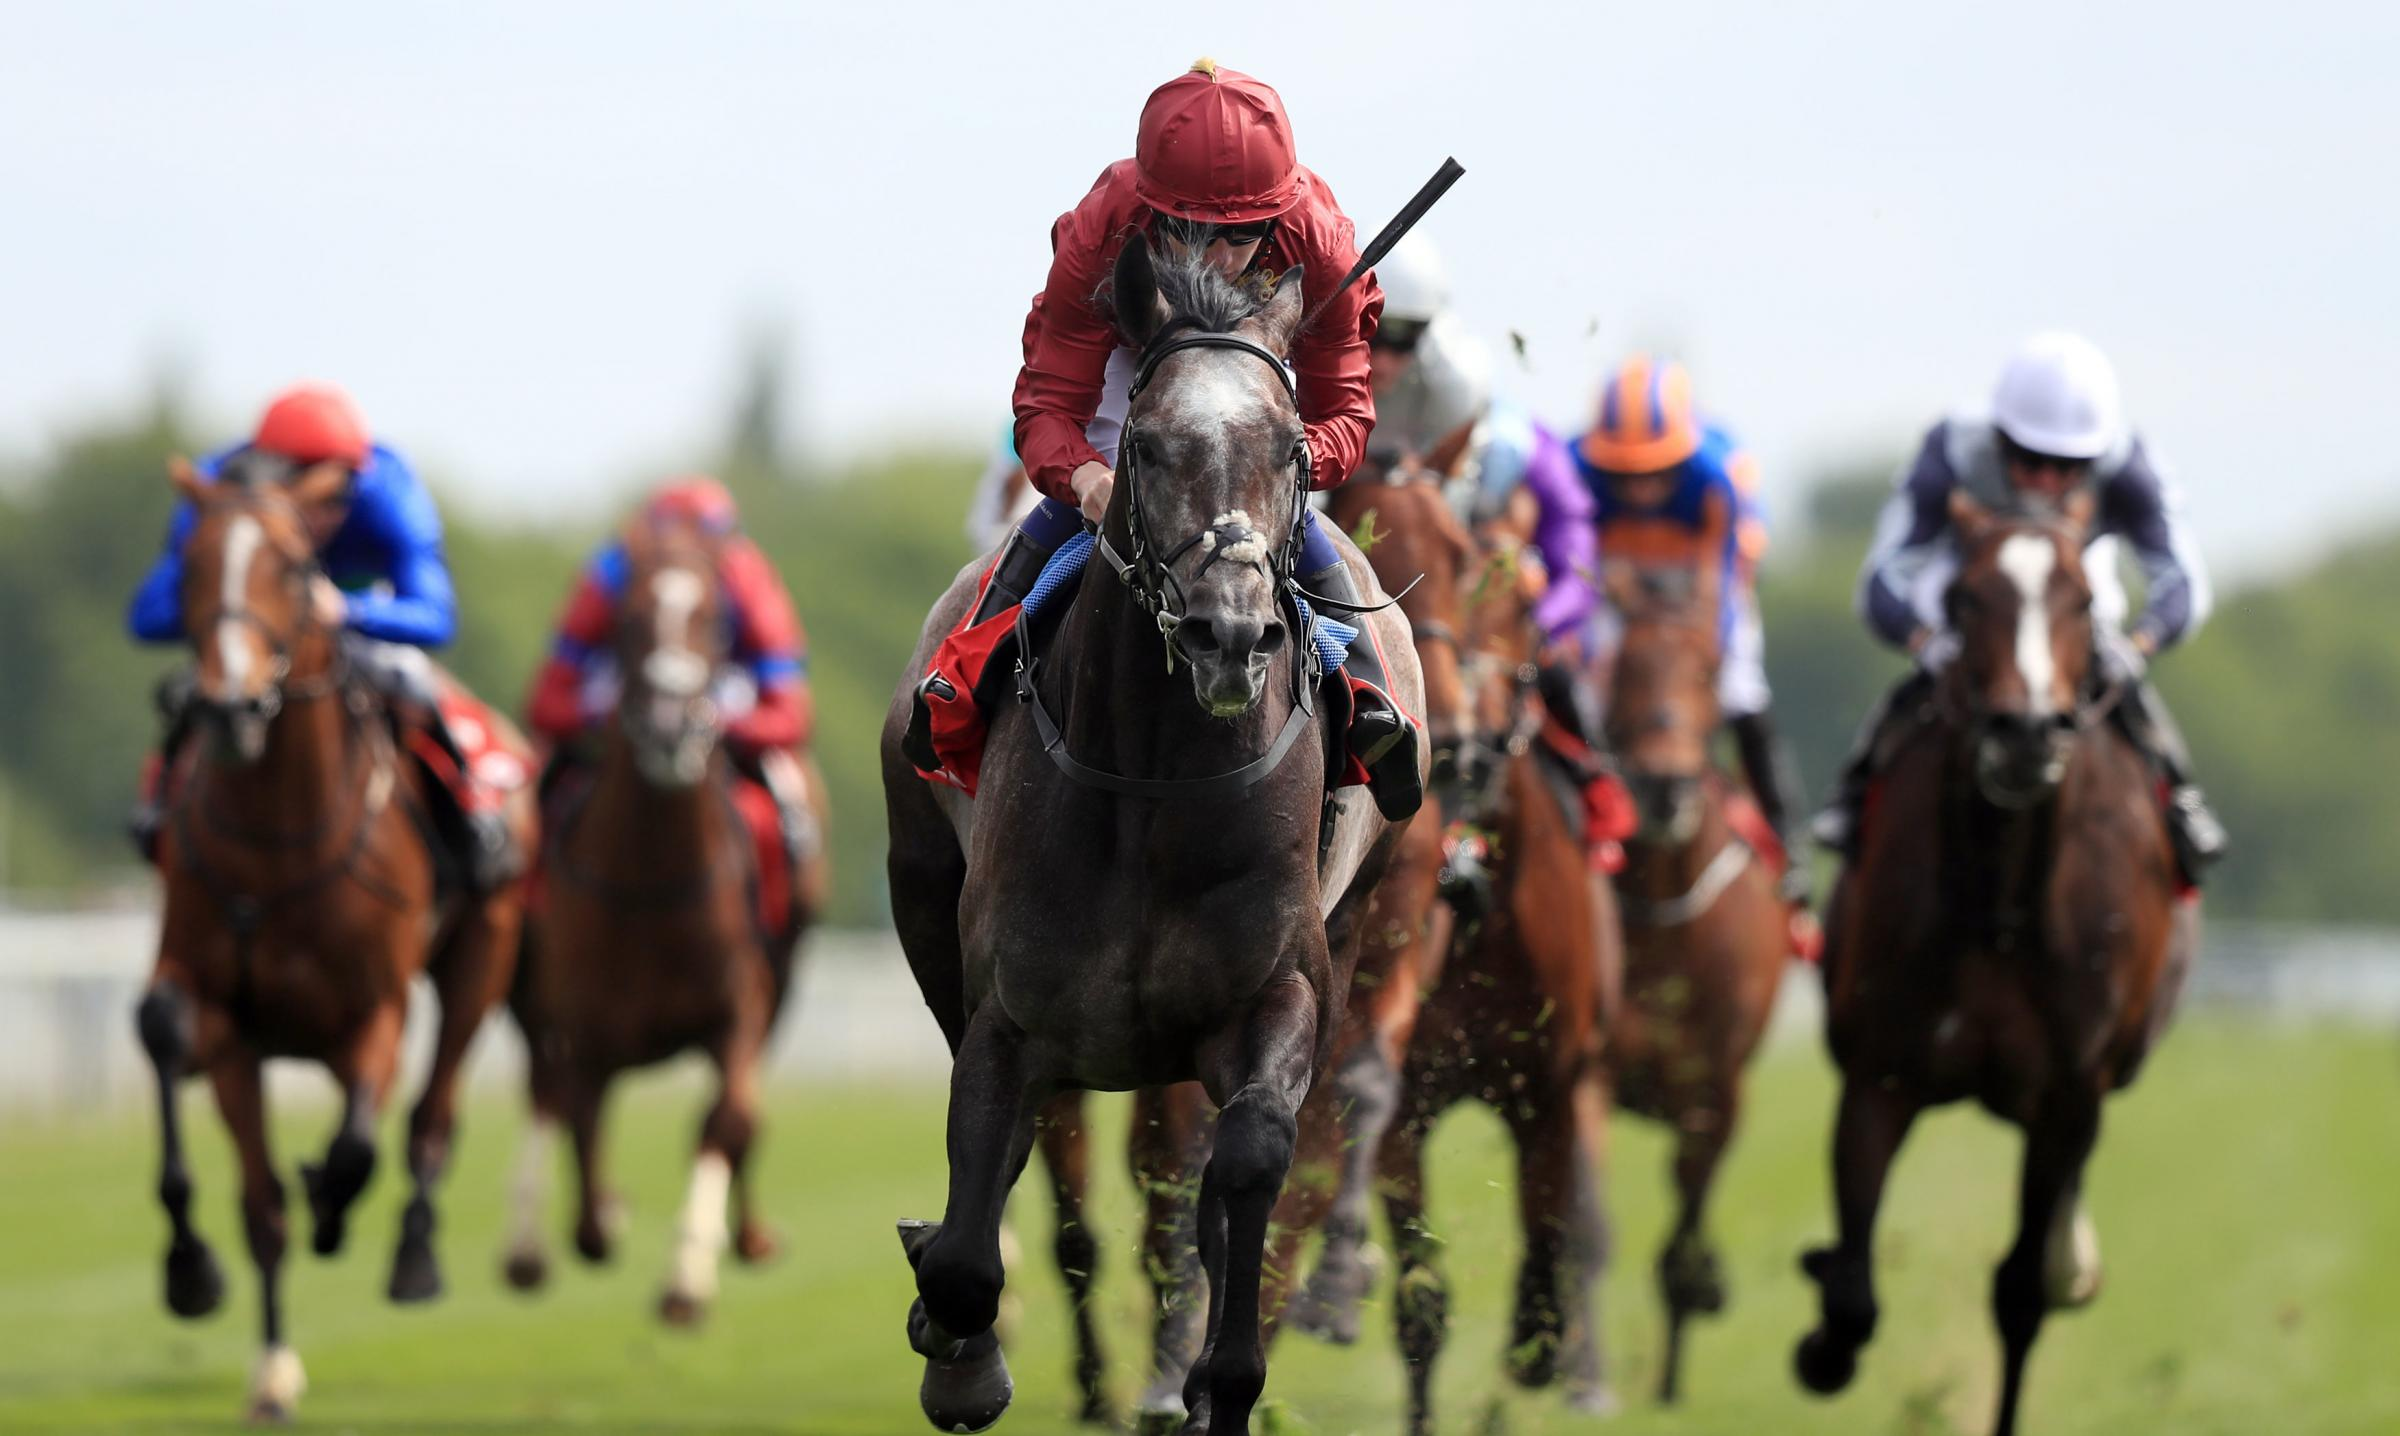 ROARING SUCCESS: York's Dante Stakes will be sponsored by Al Basti in 2019 with Roaring Lion pictured winning this year's race